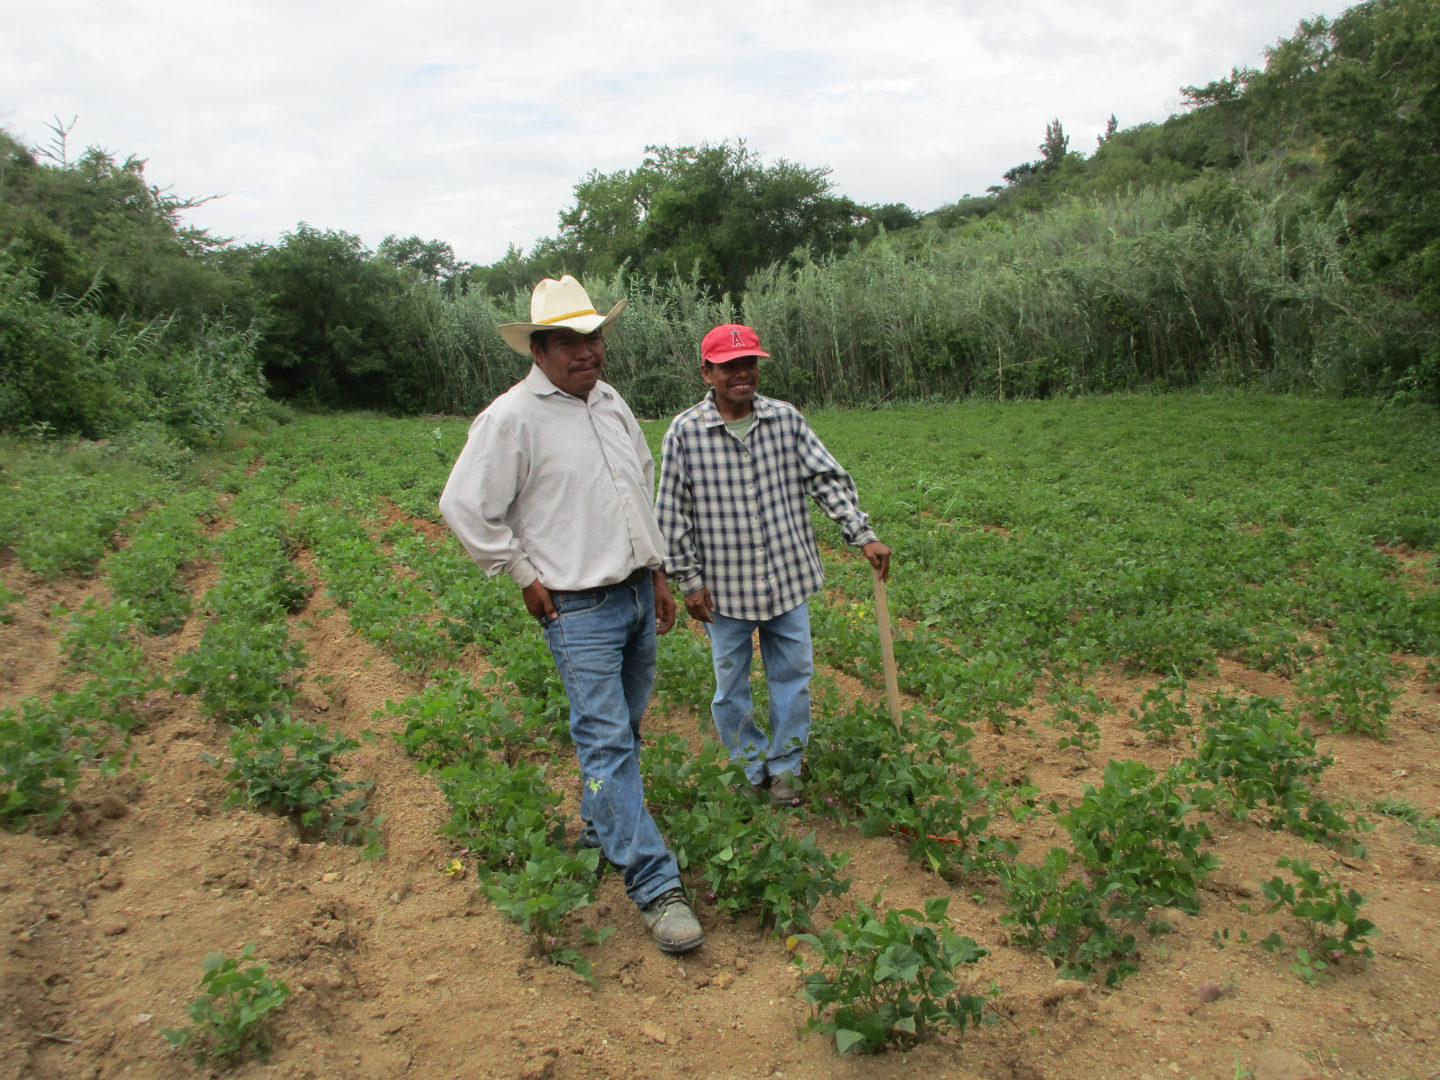 Eleuterio and Pedro stand in the middle of an agroforestry plot in Coatecas Altas.